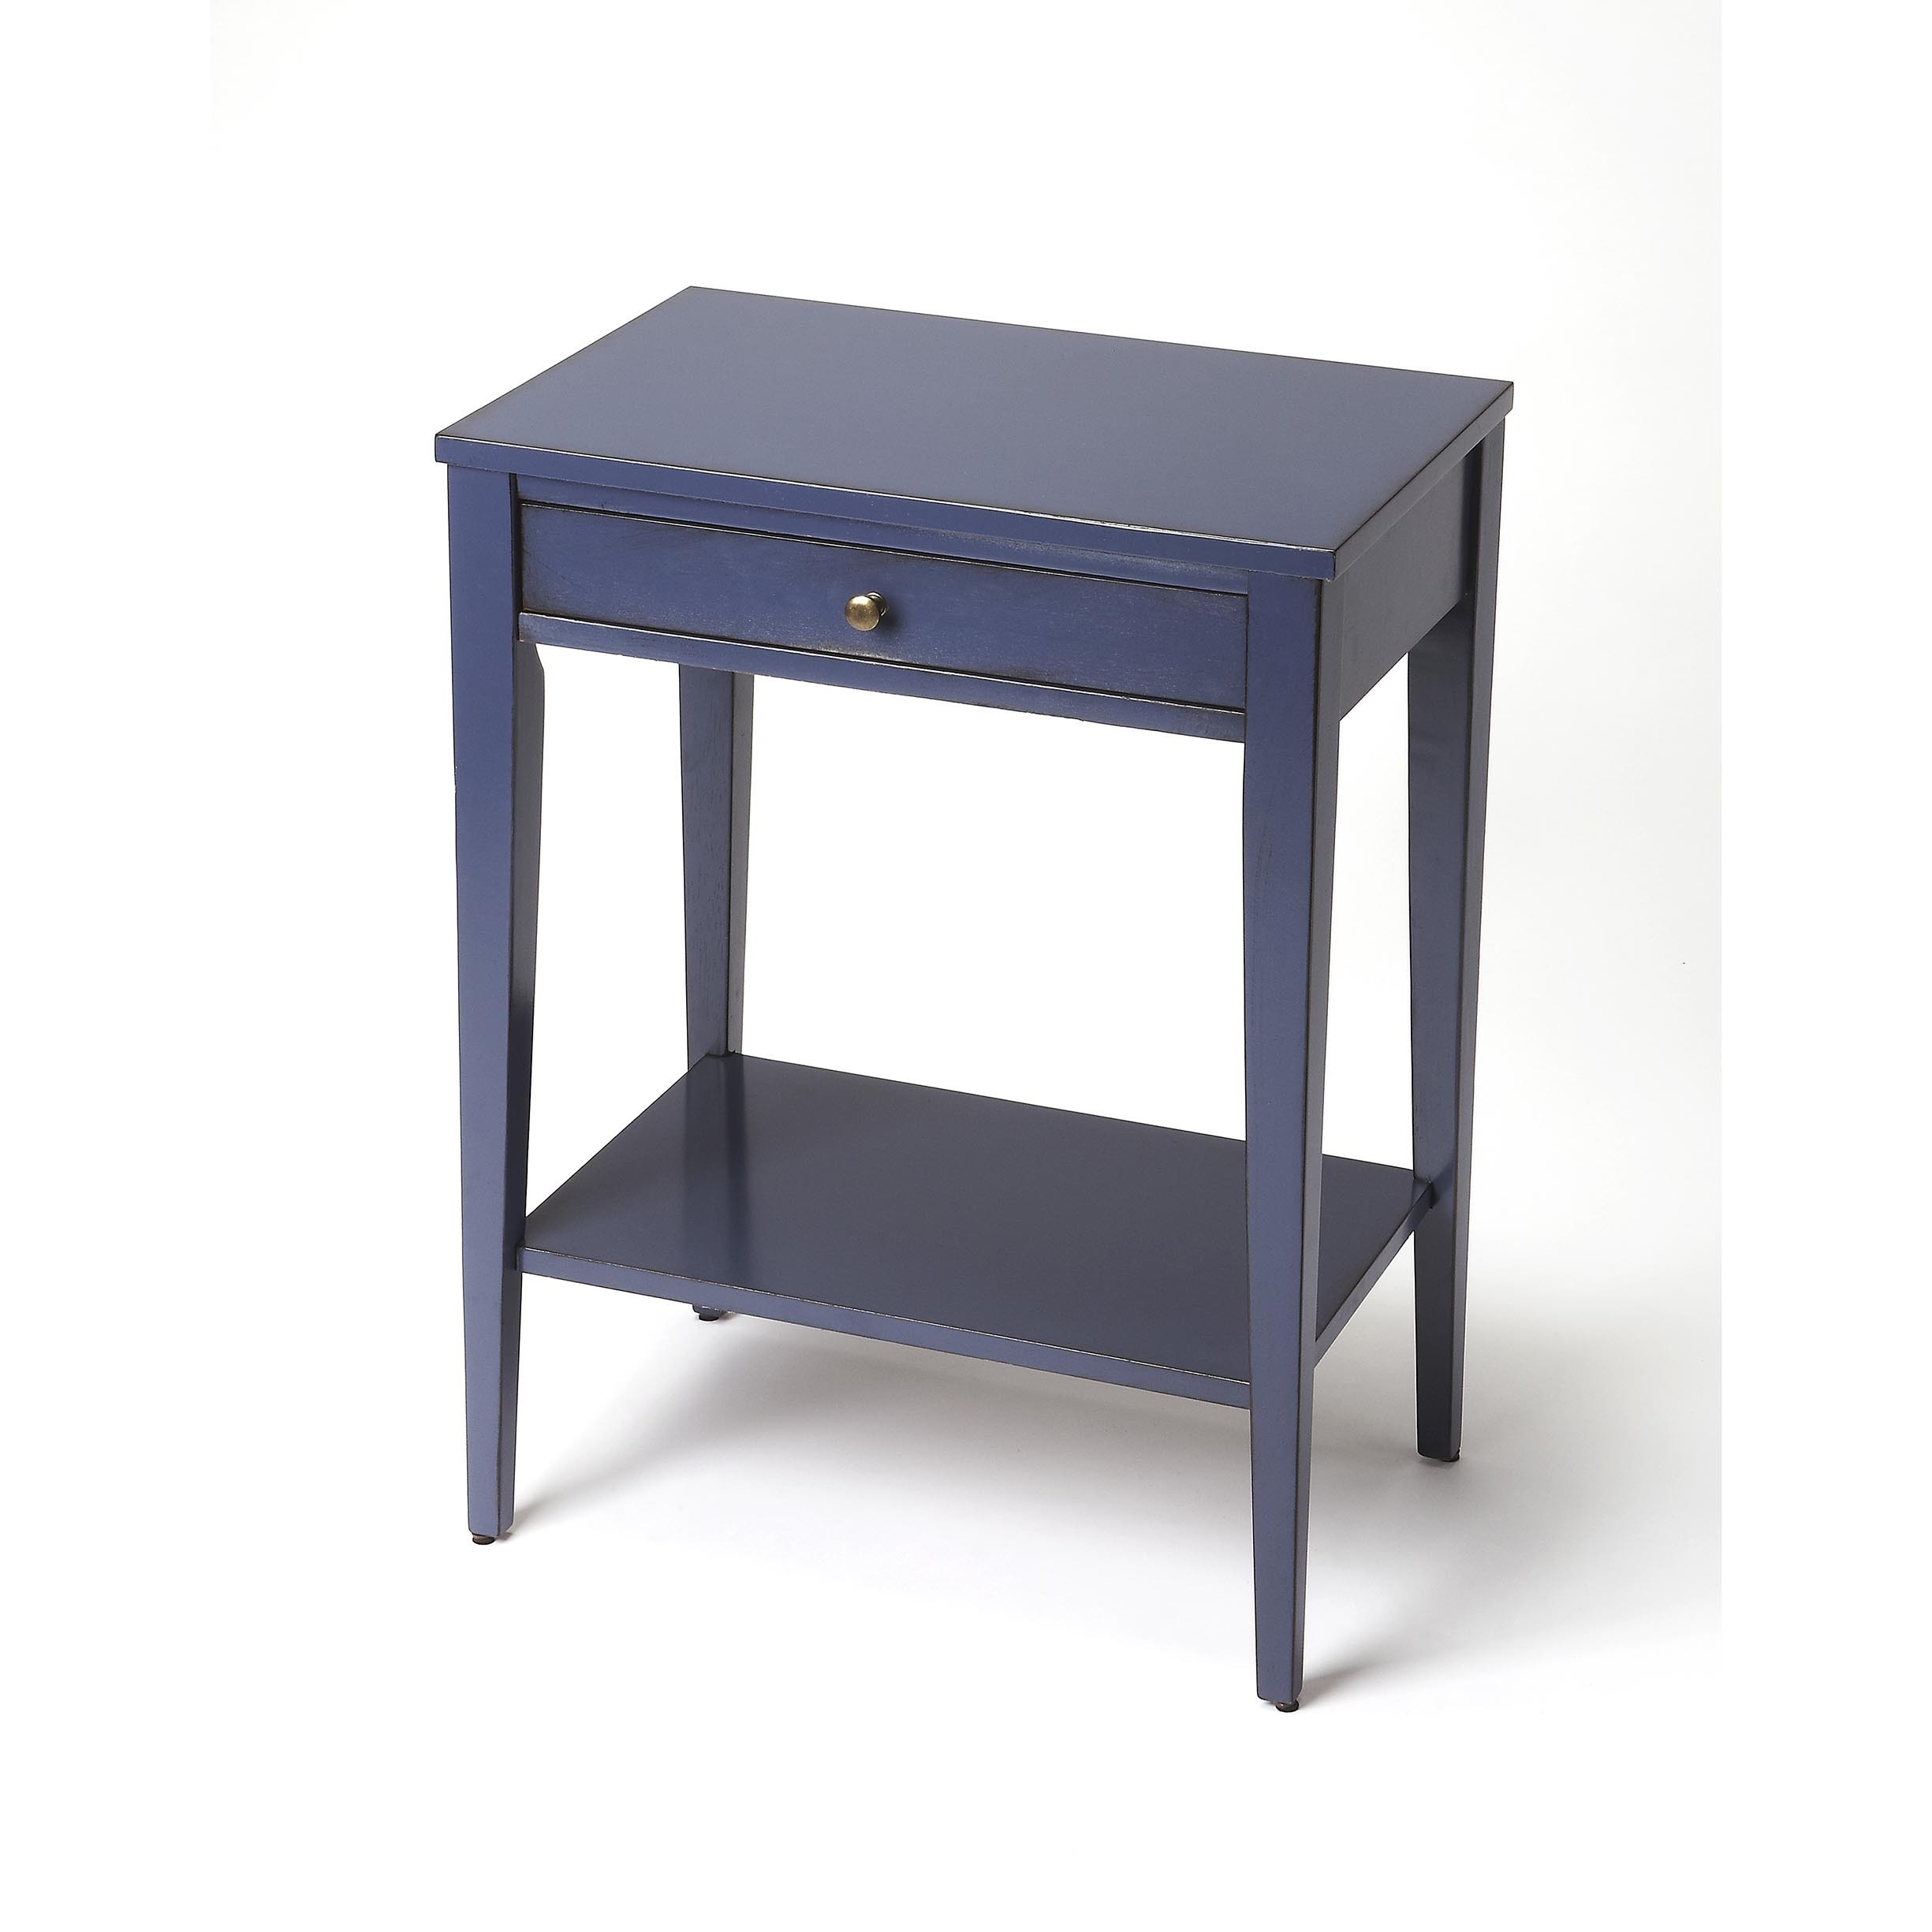 butler cobble hill navy blue console table free end shipping today round marble cocktail placement small glass and wood coffee white cottage outside garden furniture dining room